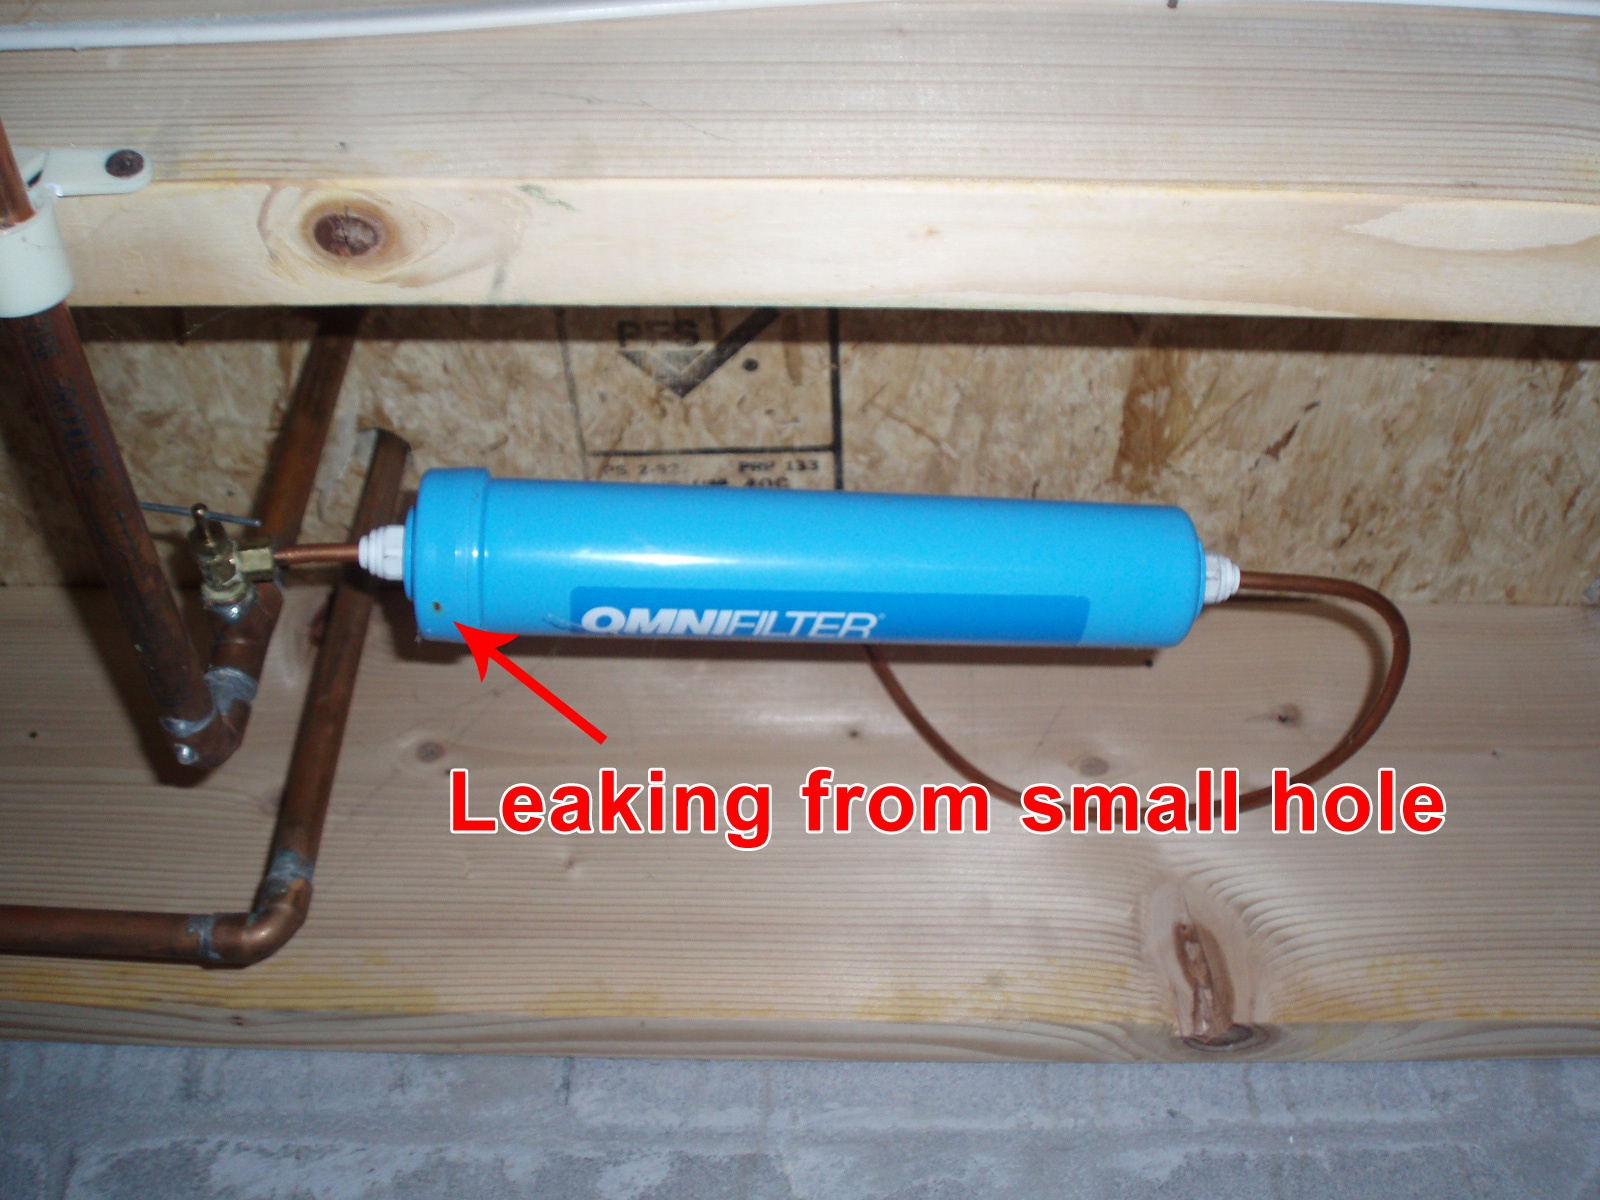 Refrigerator Ice Maker Filter Leaking Omni Water Filter R200 A Picture Image Photo